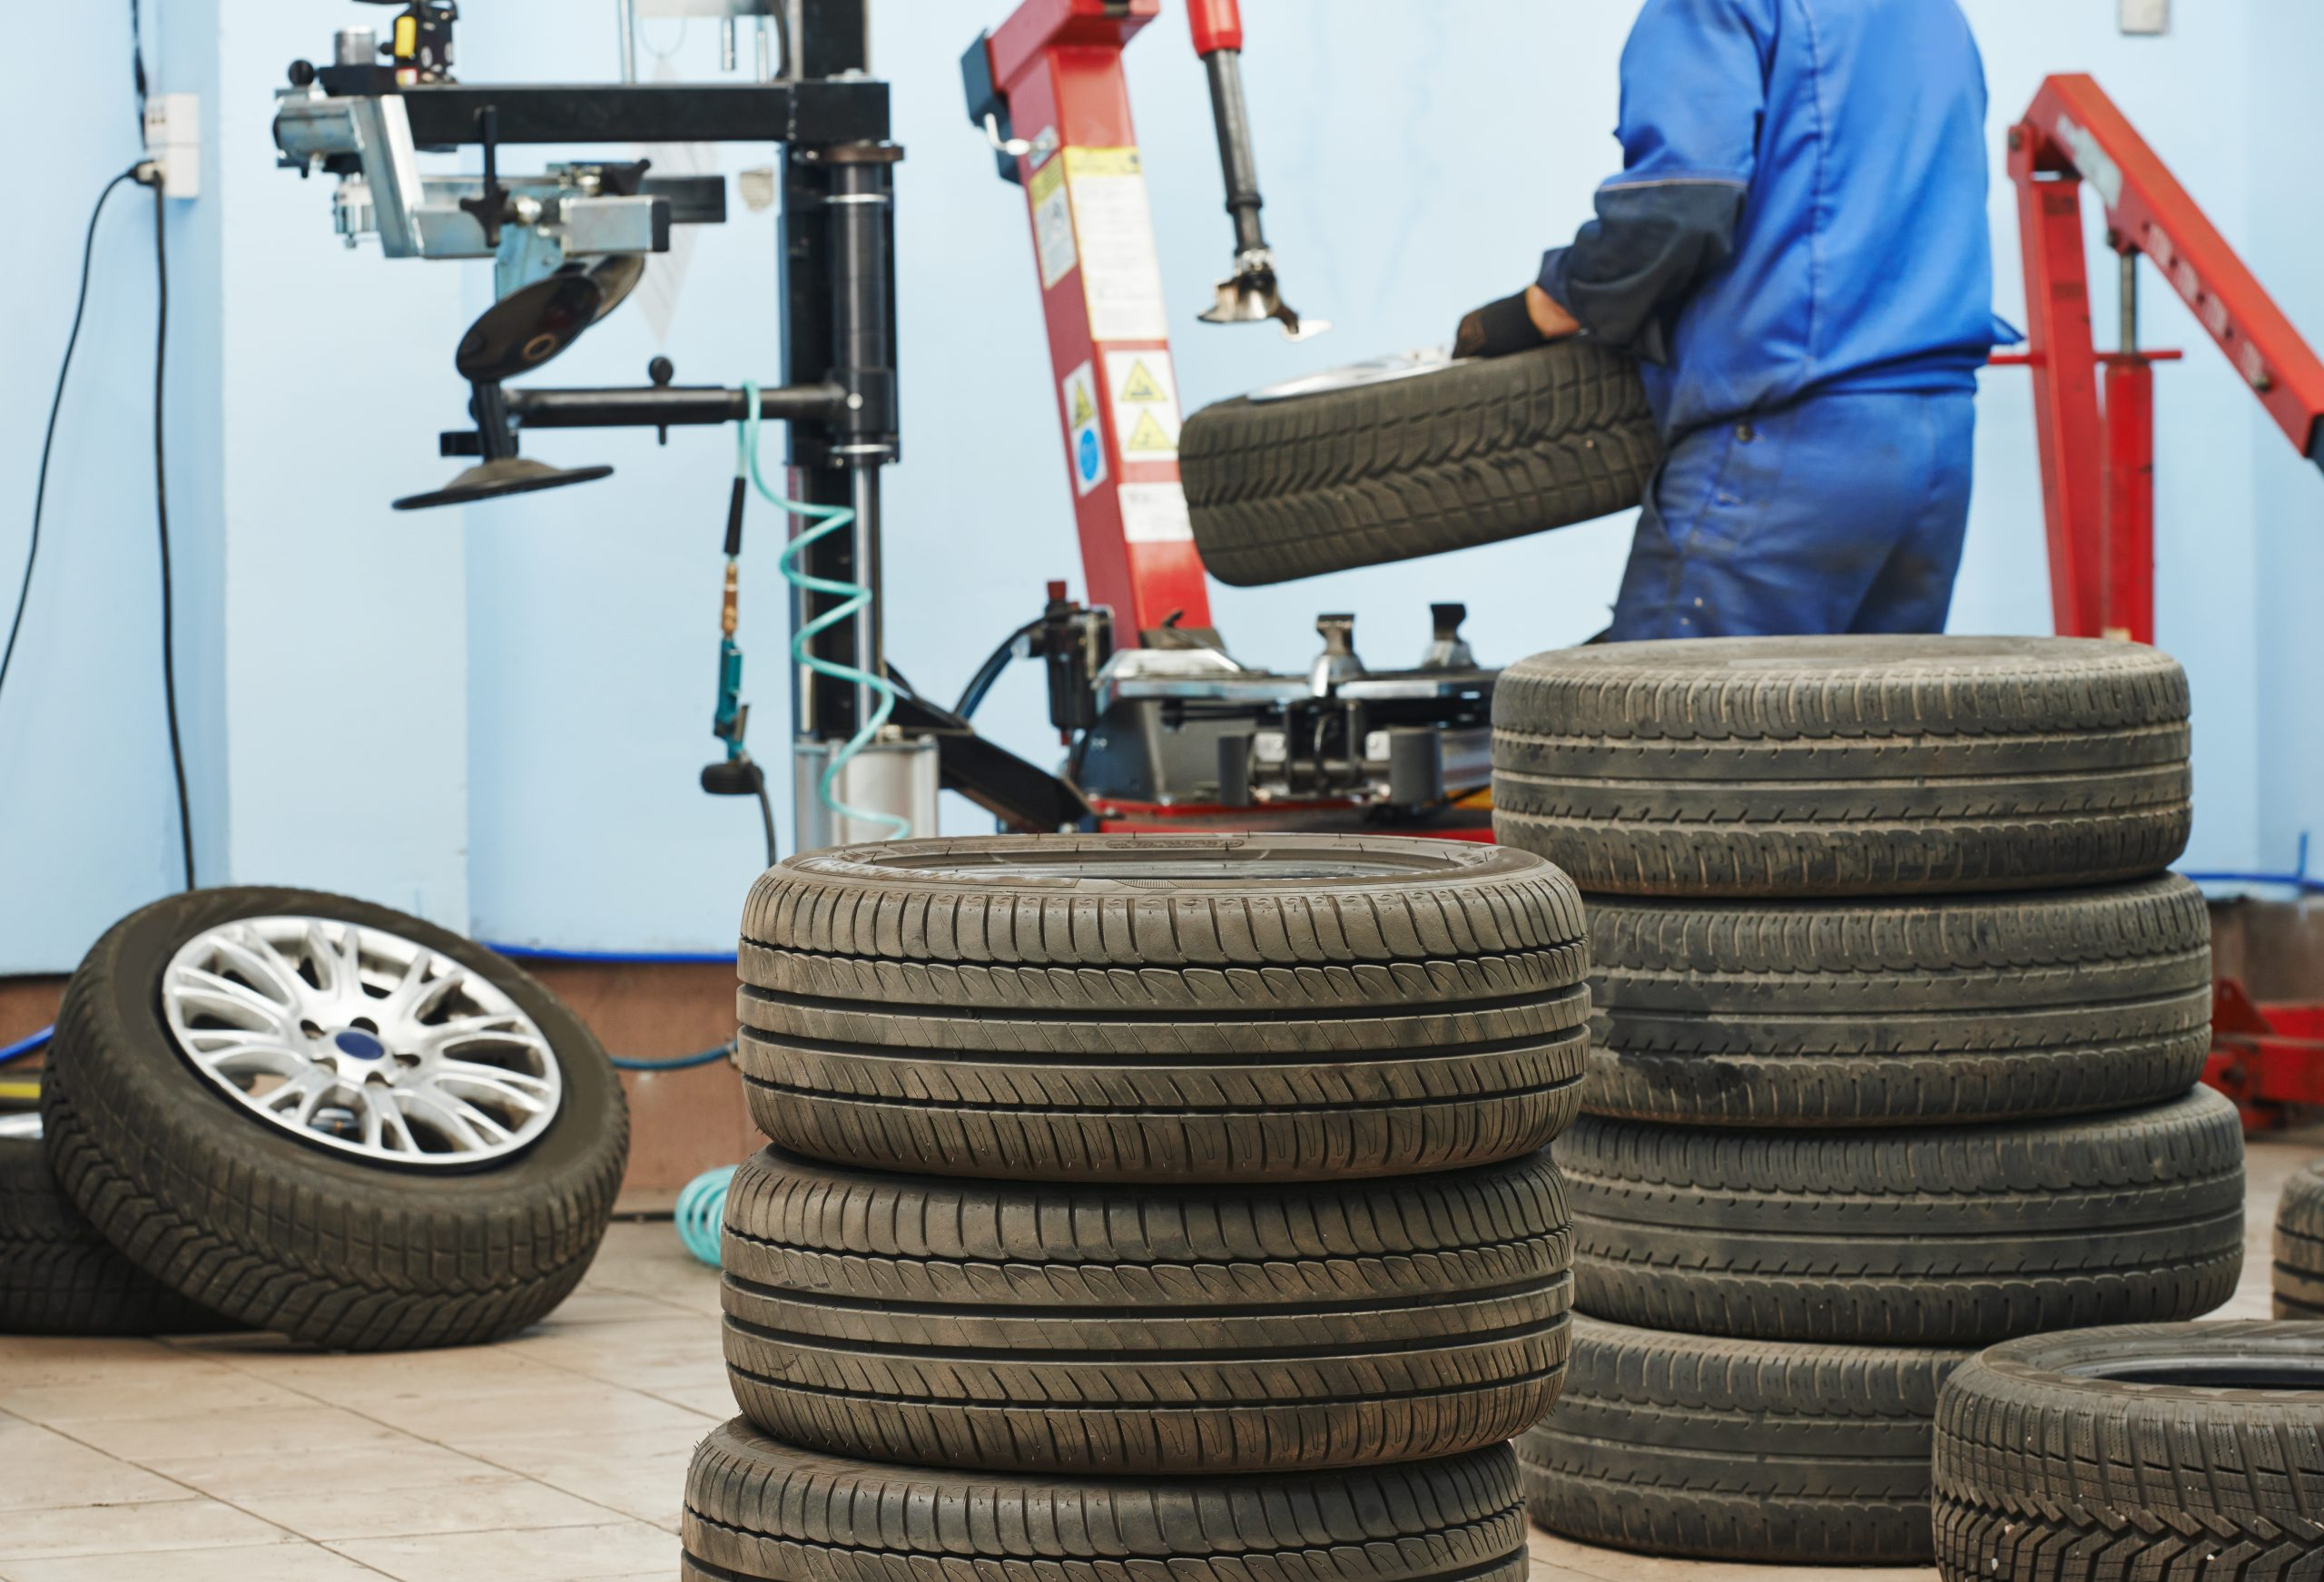 photo of Auto repairman loading automobile car wheel at tire fitting machine during tire replacing